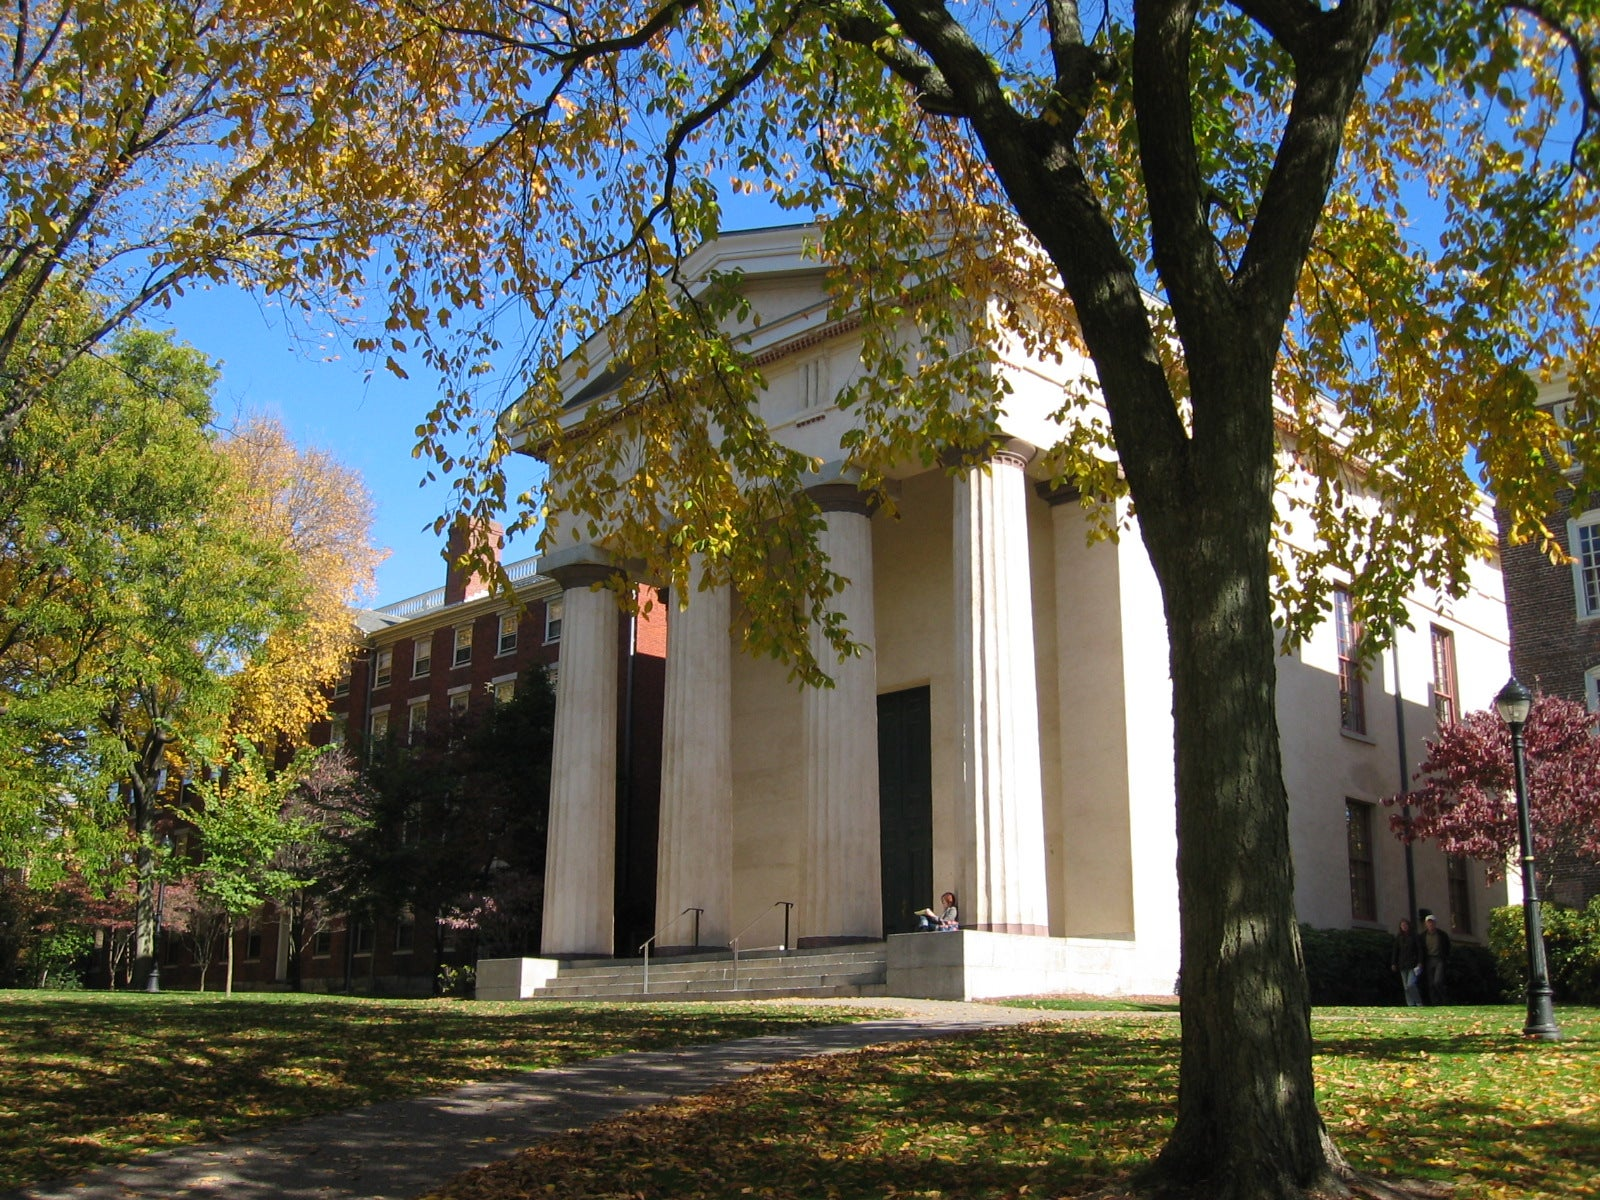 Brown's Manning Chapel was built in the 19th century.